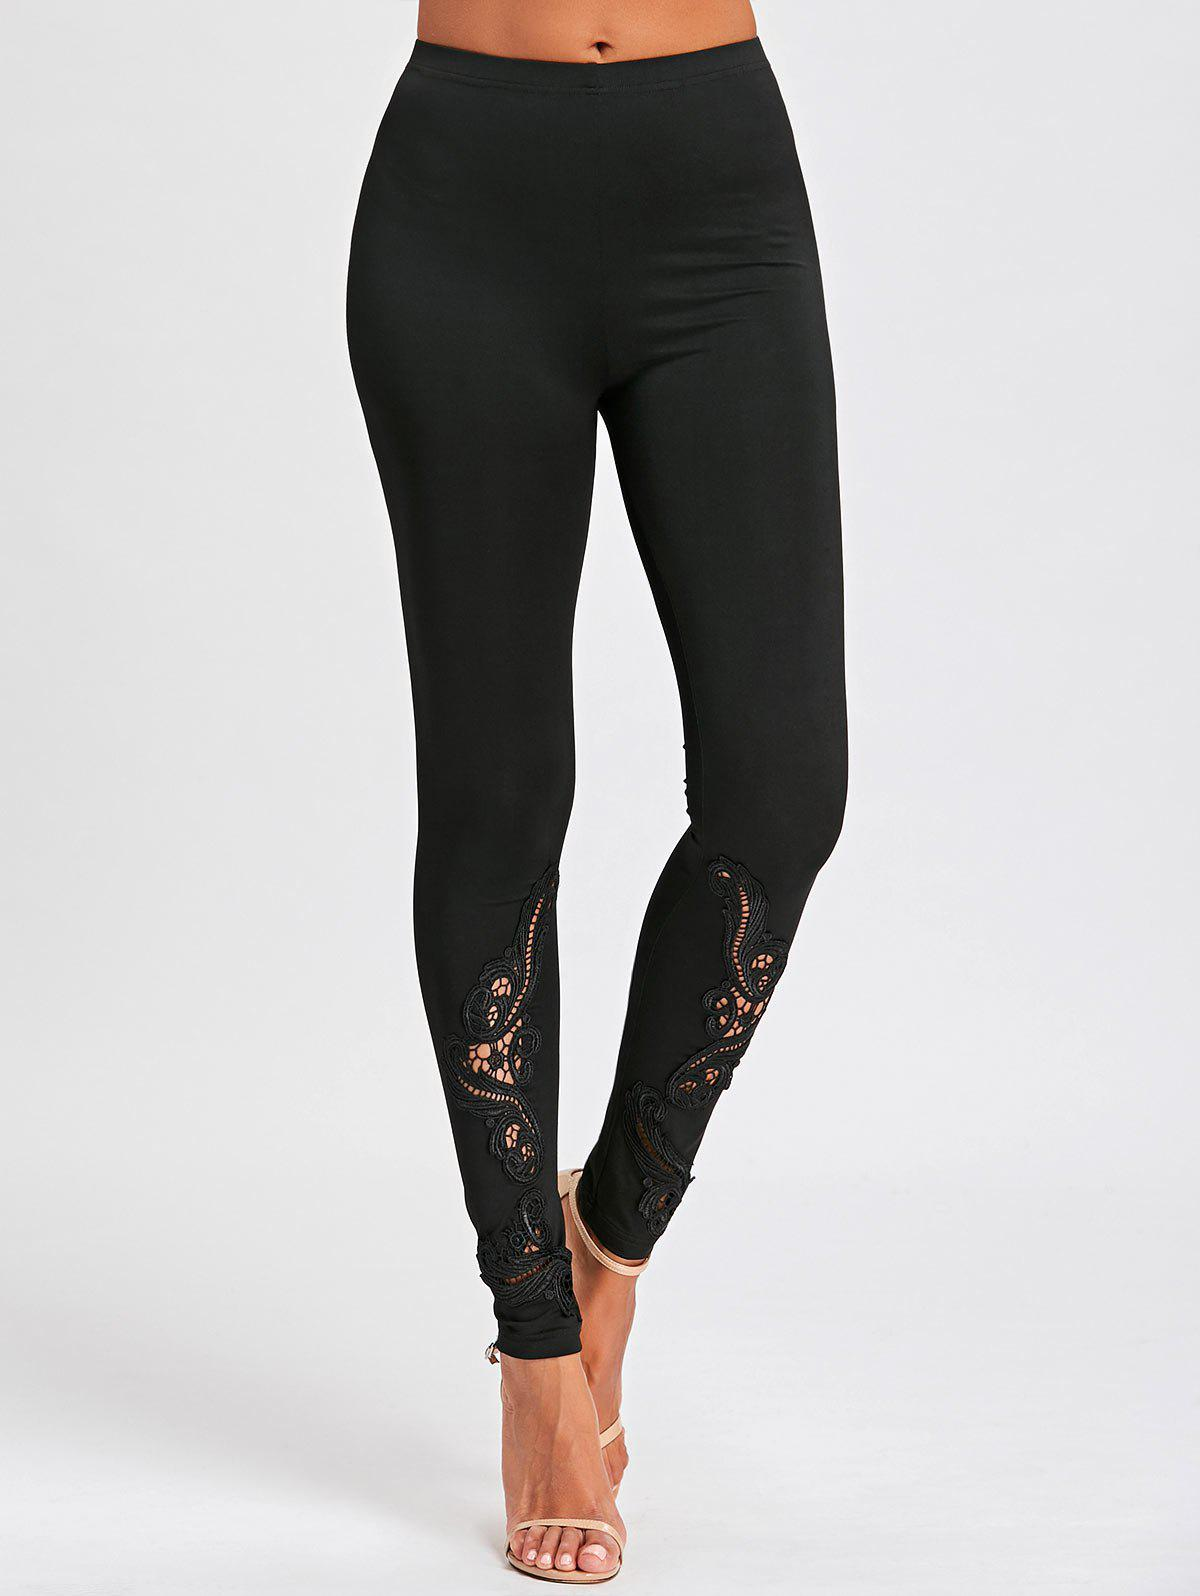 Hollow Out Lace Panel Tight LeggingsWOMEN<br><br>Size: M; Color: BLACK; Style: Fashion; Material: Polyester,Spandex; Waist Type: High; Pattern Type: Others; Weight: 0.2500kg; Package Contents: 1 x Leggings;